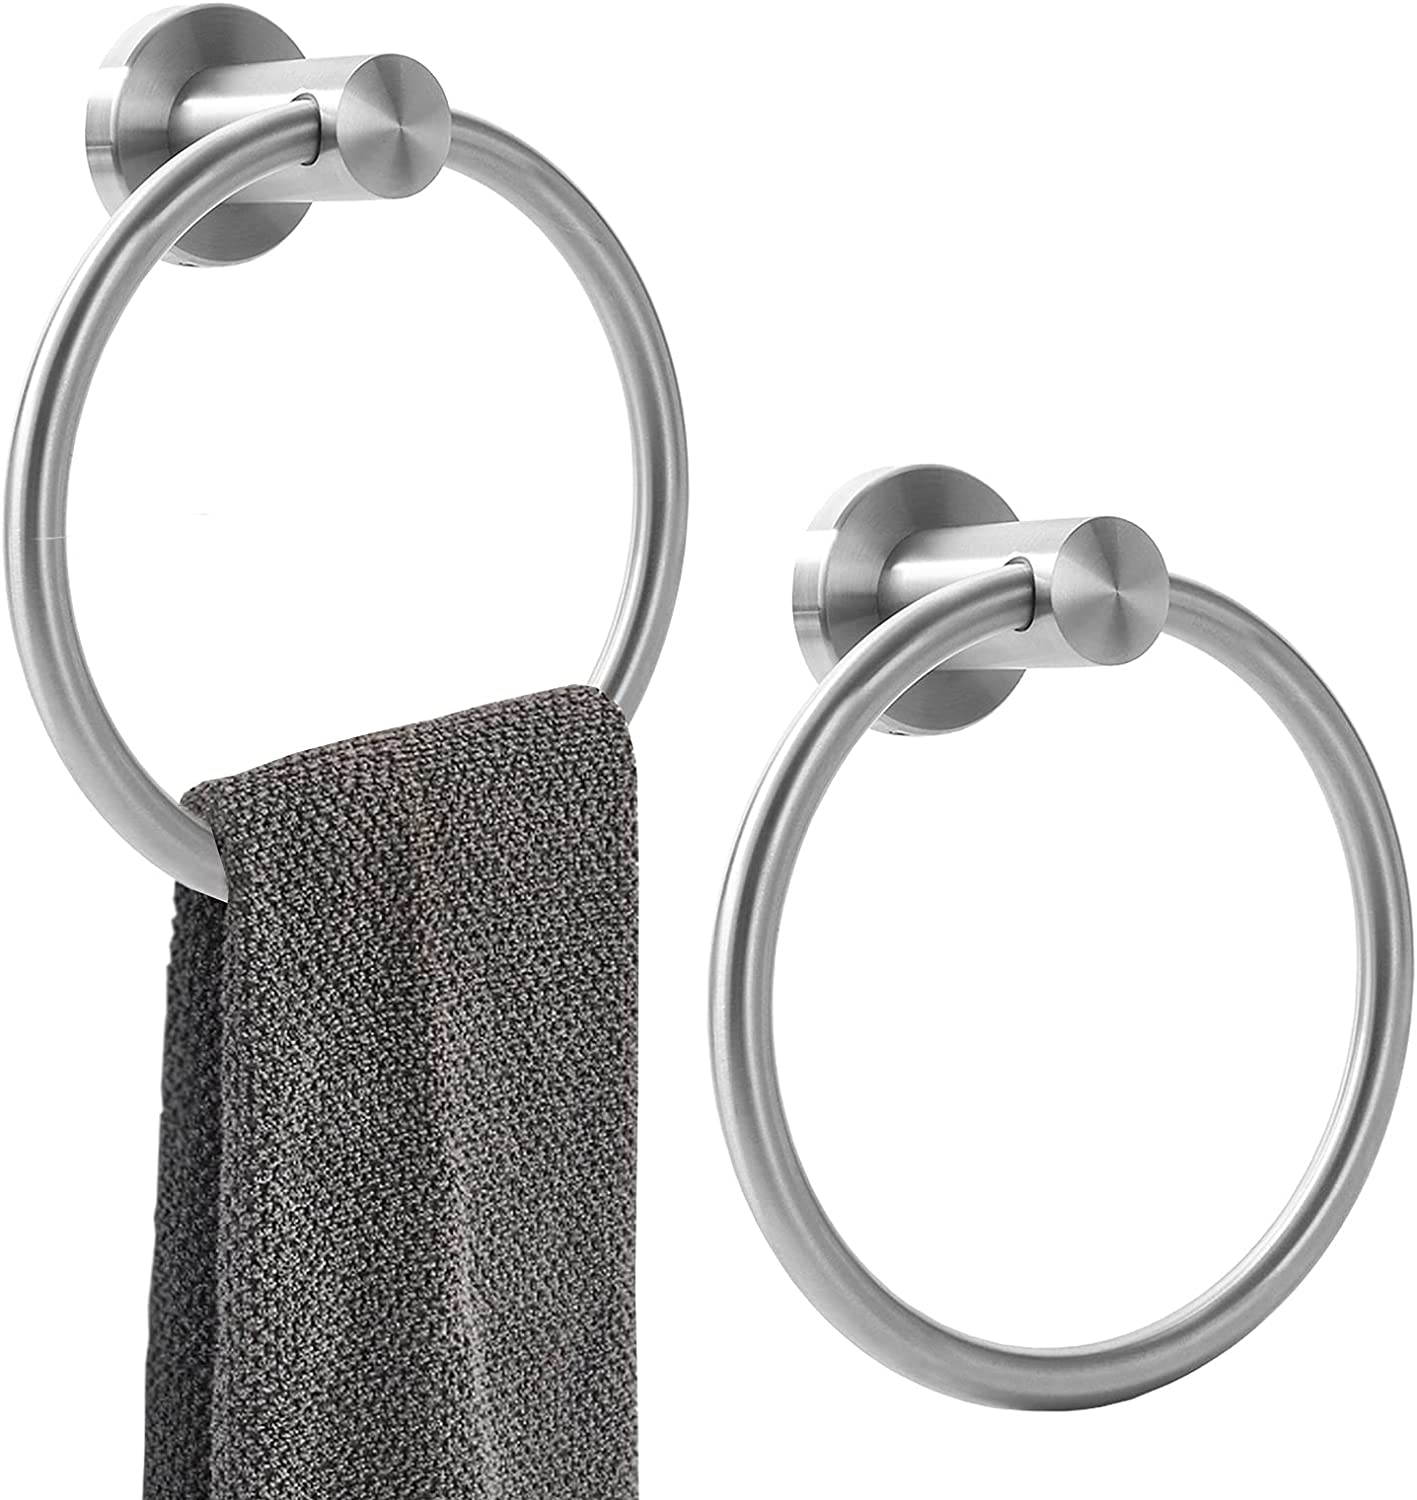 Orlif Towel Ring Brushed Nickel New product! New type Dut for Heavy Bathroom,SUS Max 72% OFF 304